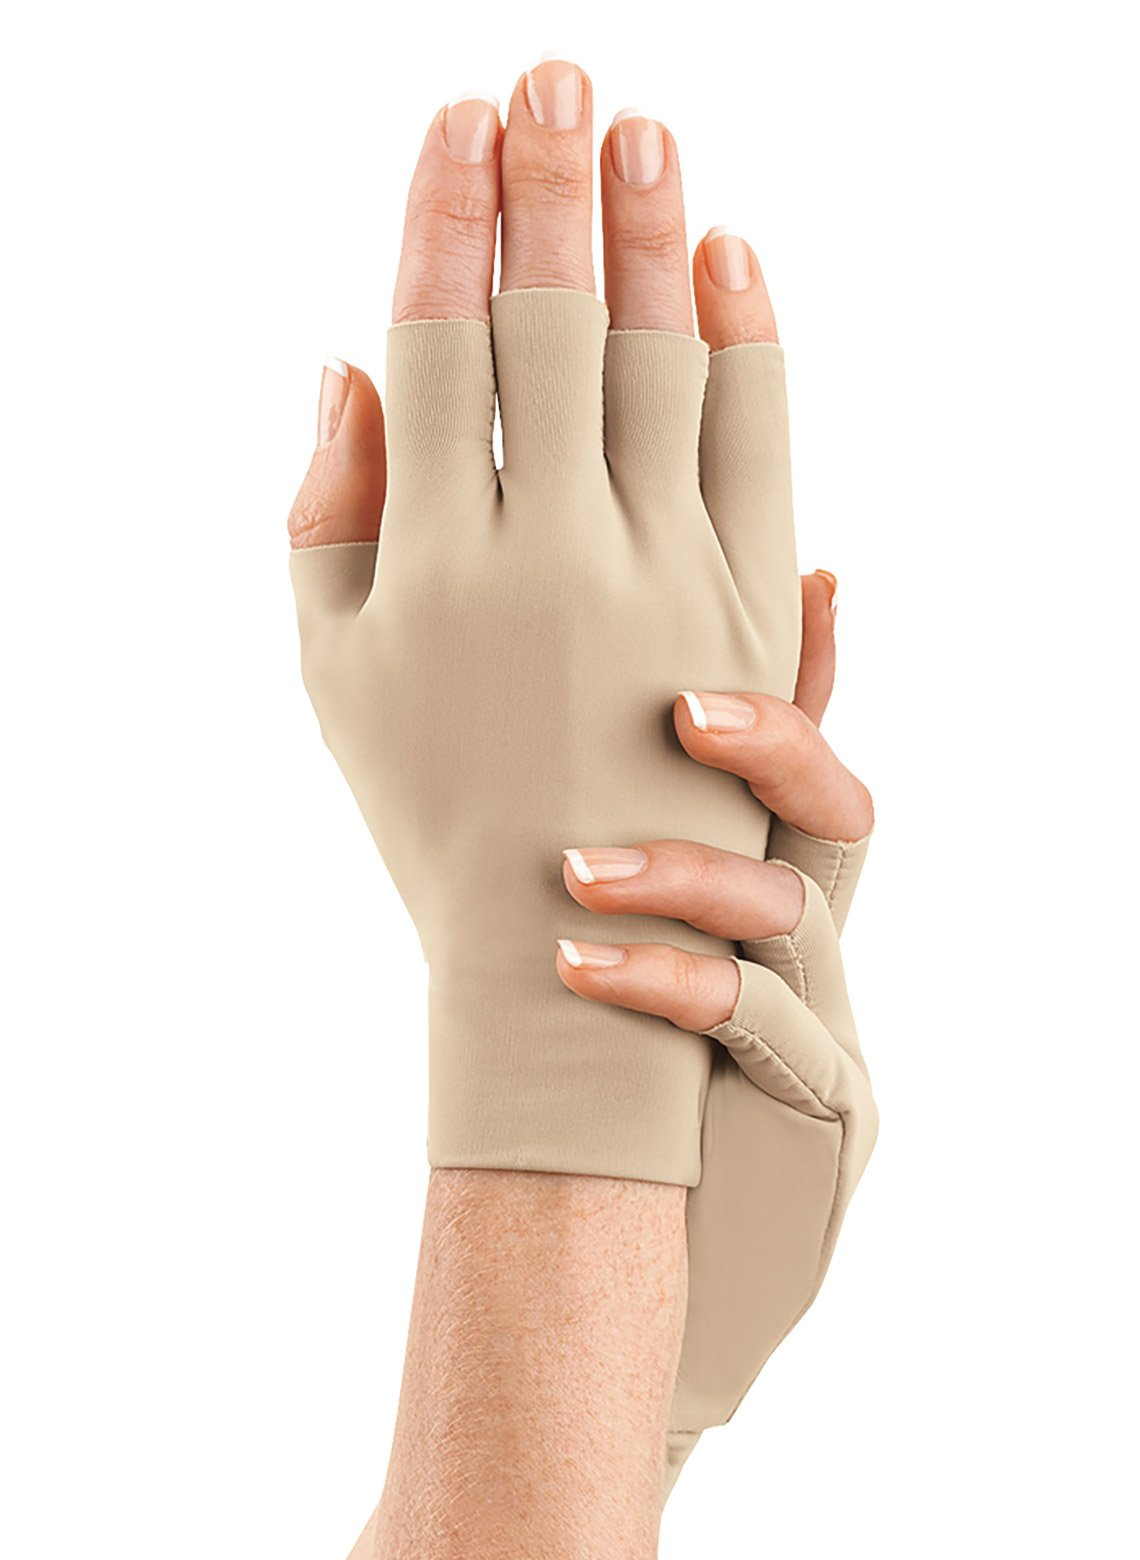 Arthritis Gloves 1 PAIR for Arthritis in Hands Compression Gloves for Carpal Tunnel, Sore & Stiff Muscles, Men and Women (Unisex) Free Eyeglass Pouch by iSupportPosture (Large)